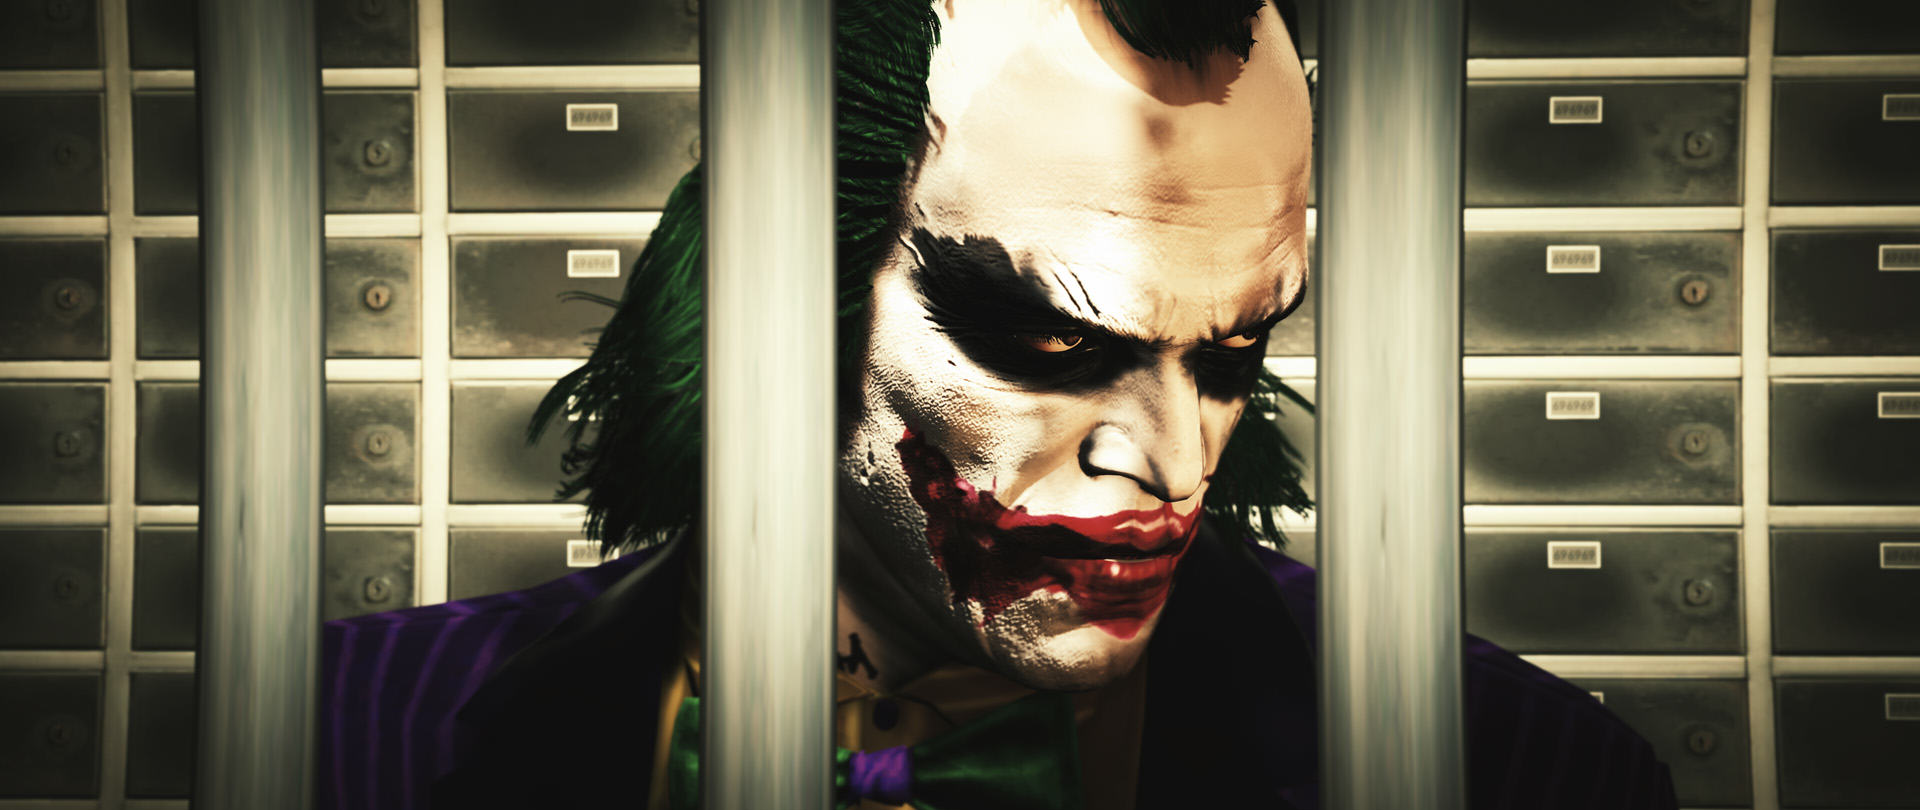 55b748fbe6685 These Photos Prove Trevor From GTA Should Be The Next Joker